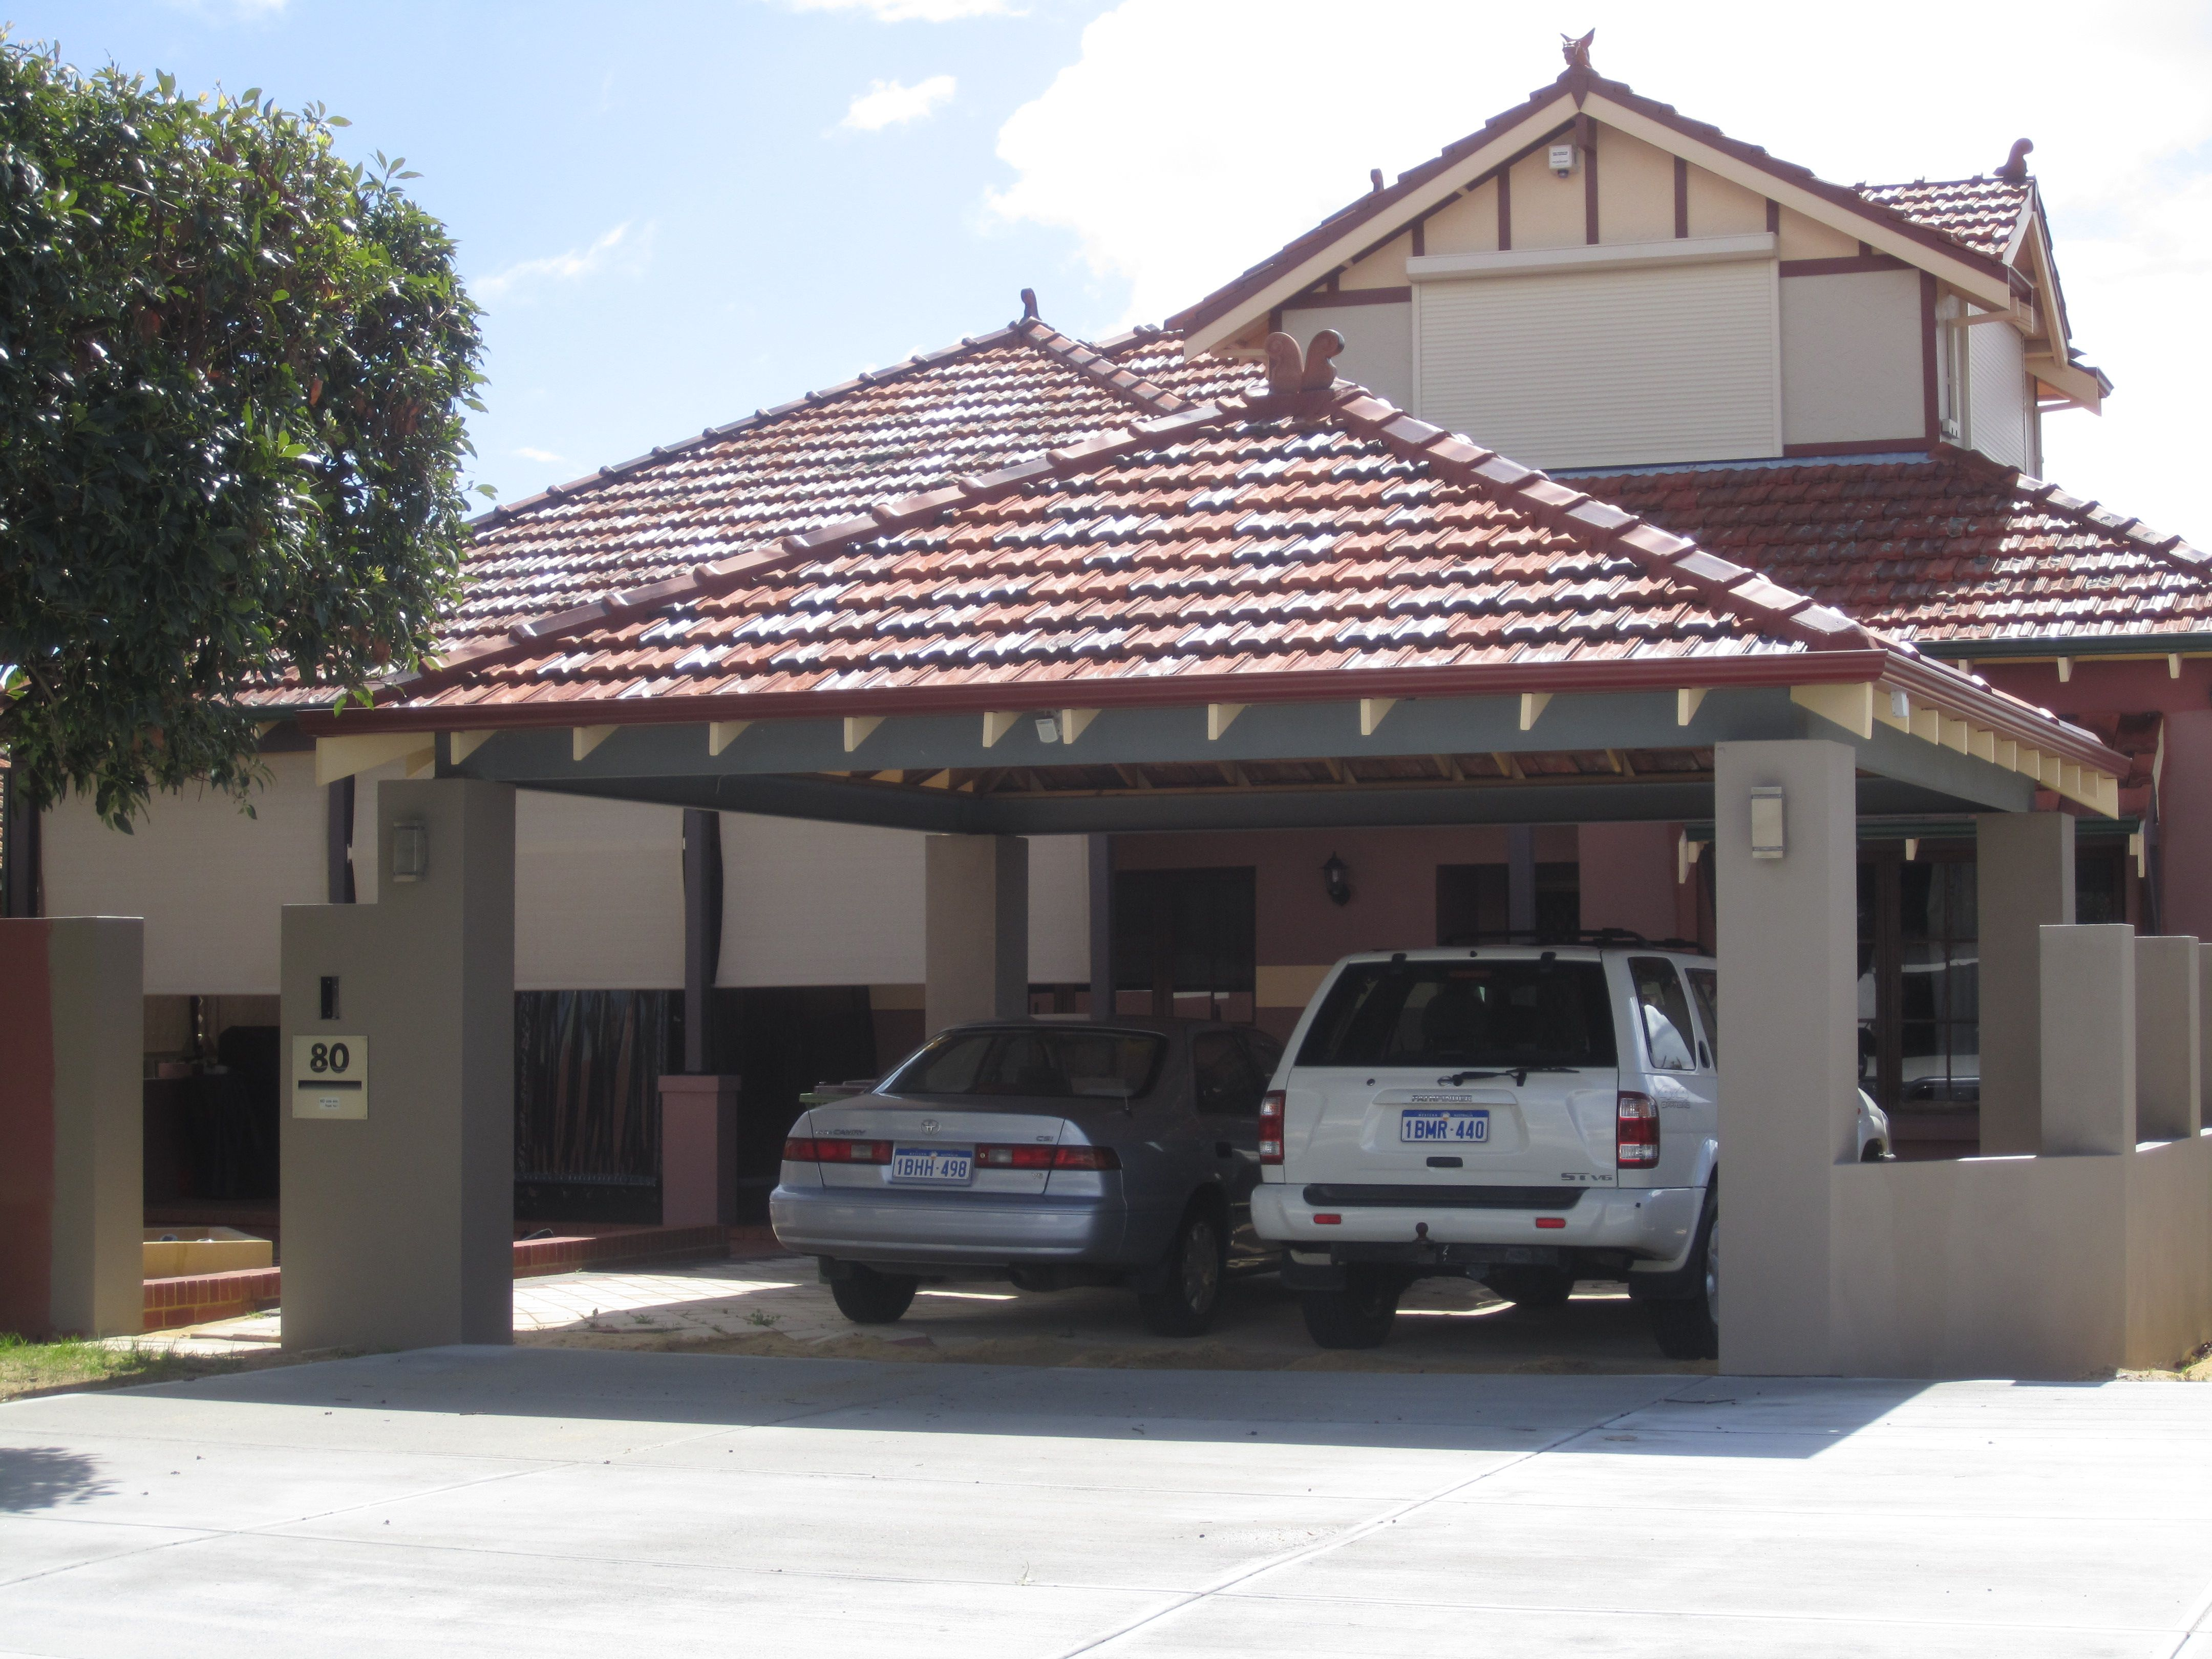 Carport constructions to dream of a garden pinterest for Brick carport designs